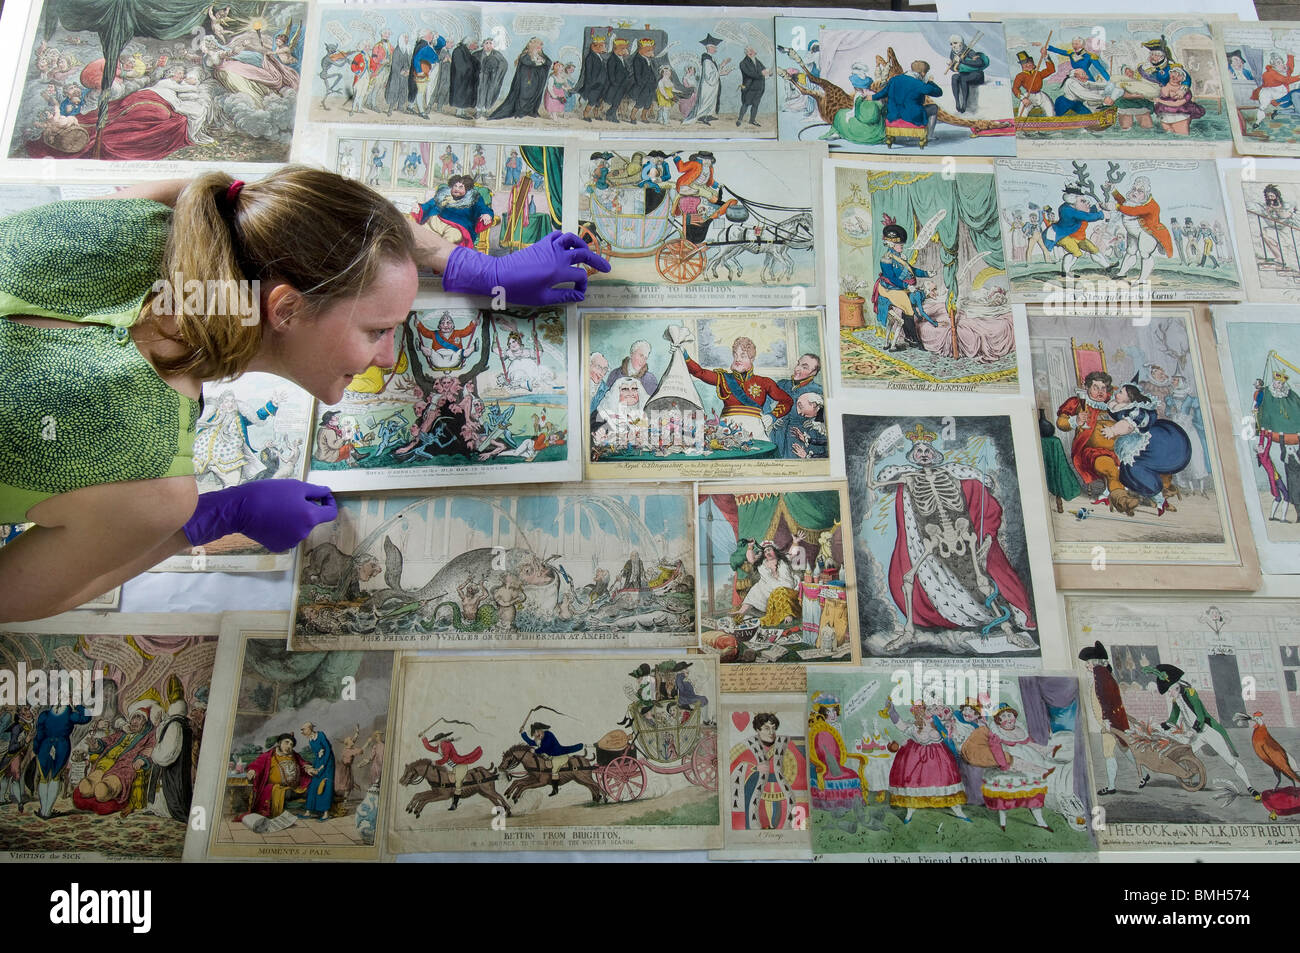 A collection of political cartoons and caricatures from the 1700s and 1800s (18th century and 19th century) at Brighton - Stock Image